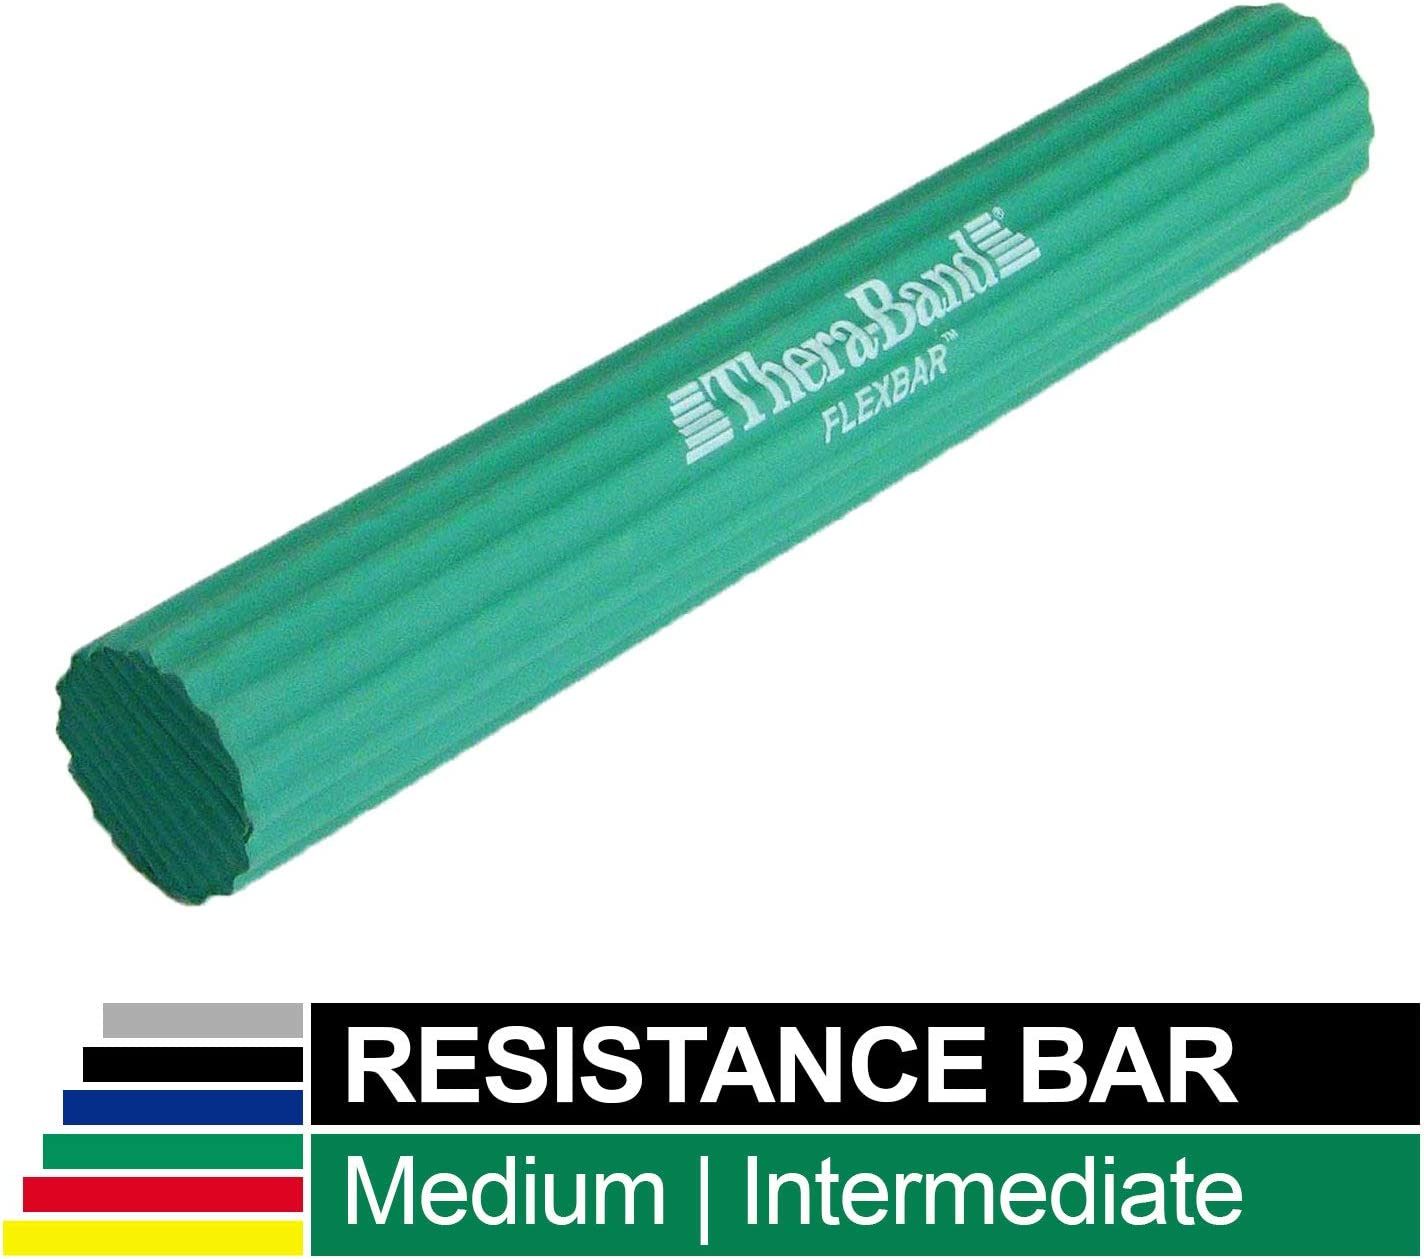 TheraBand FlexBar Relieve Tendonitis Pain